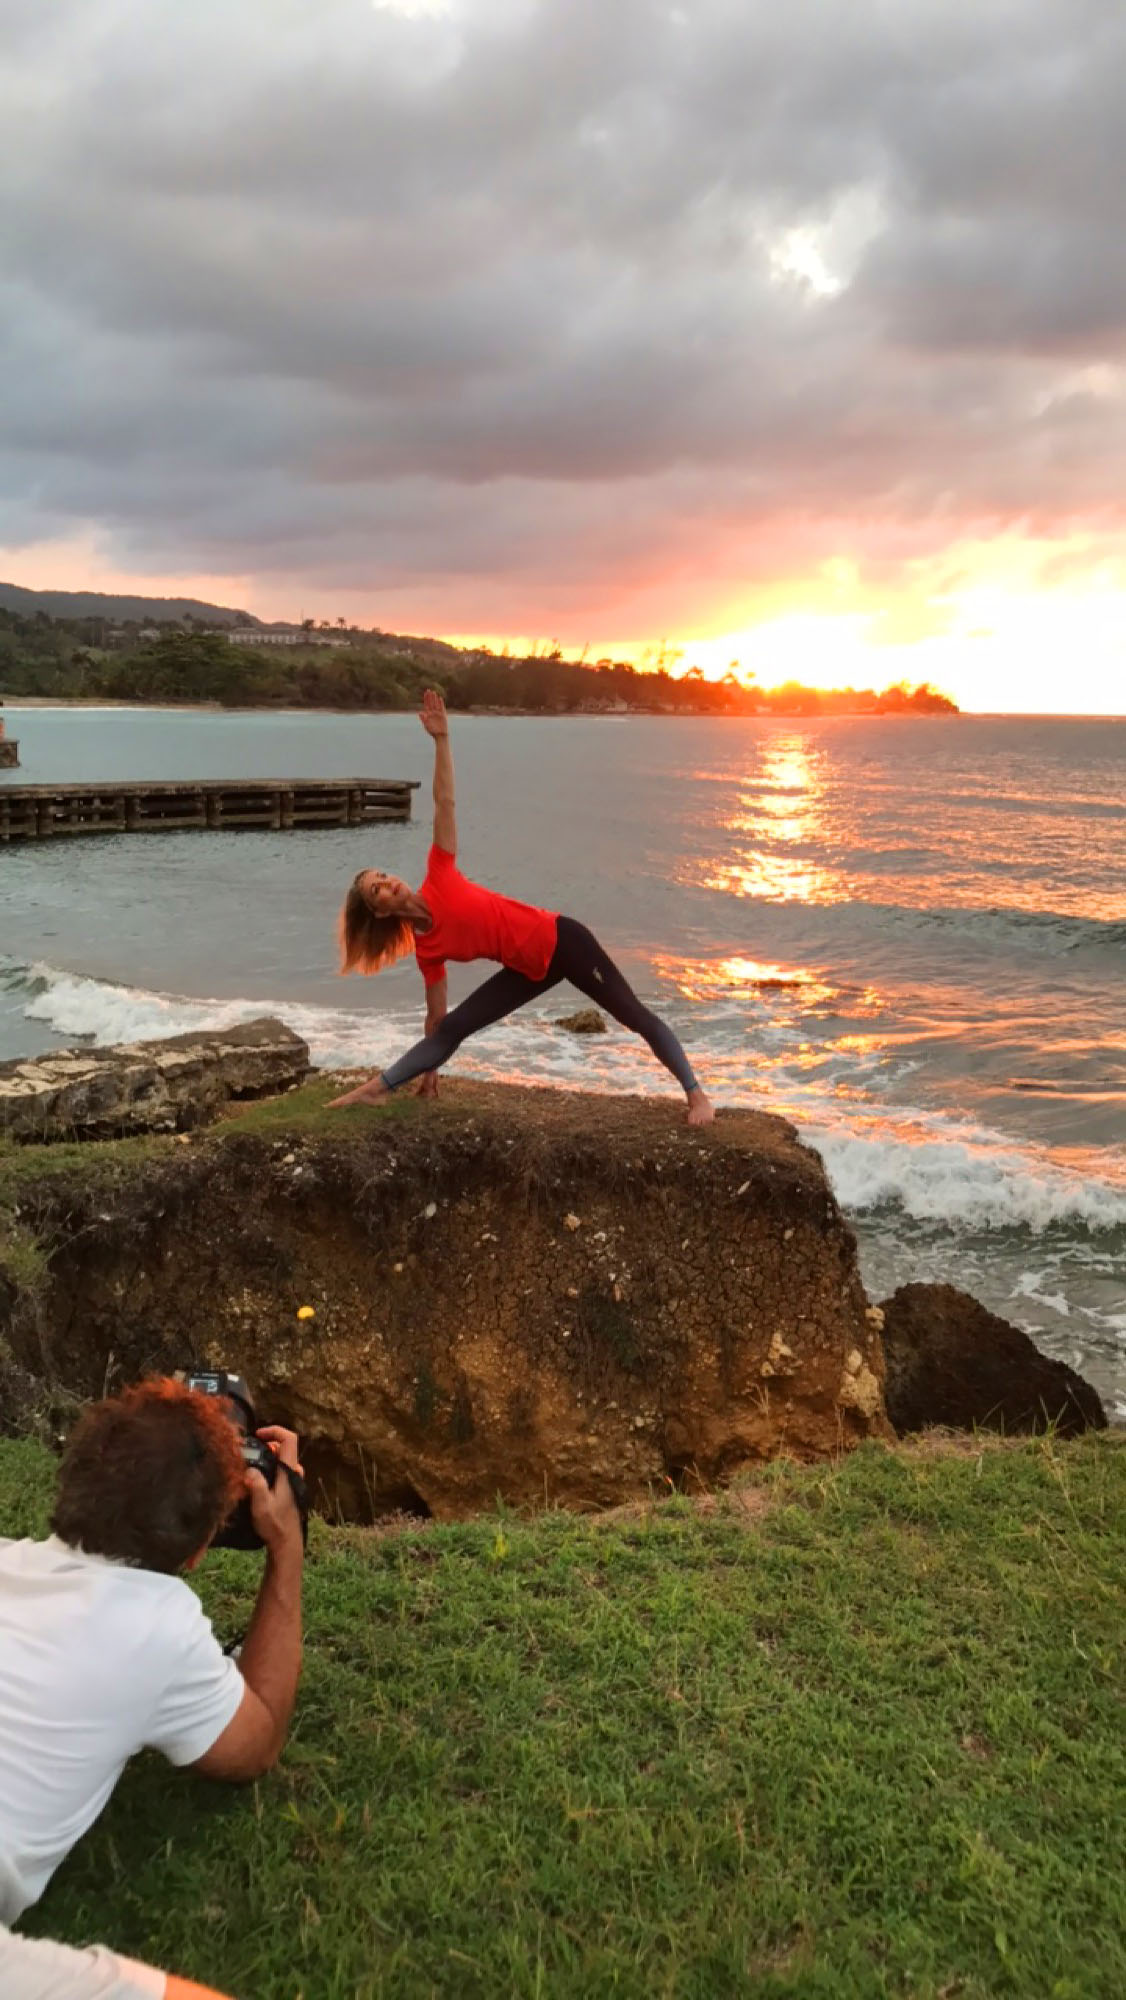 Stency Wegman performing Trikonoasana by the ocean during sunset